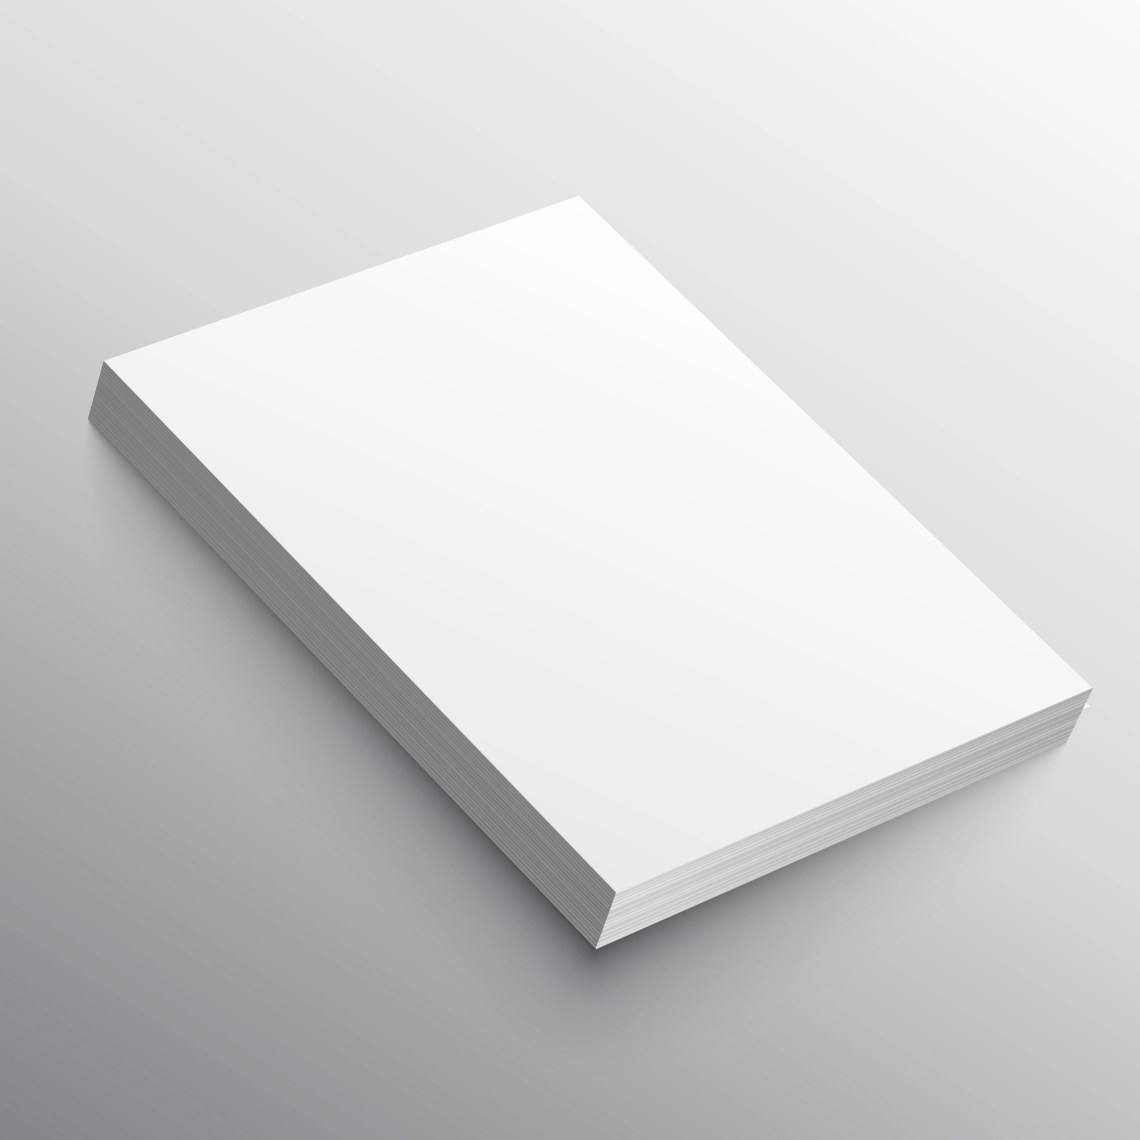 Download a4 paper stack mockup in 3d style - Download Free Vector ...